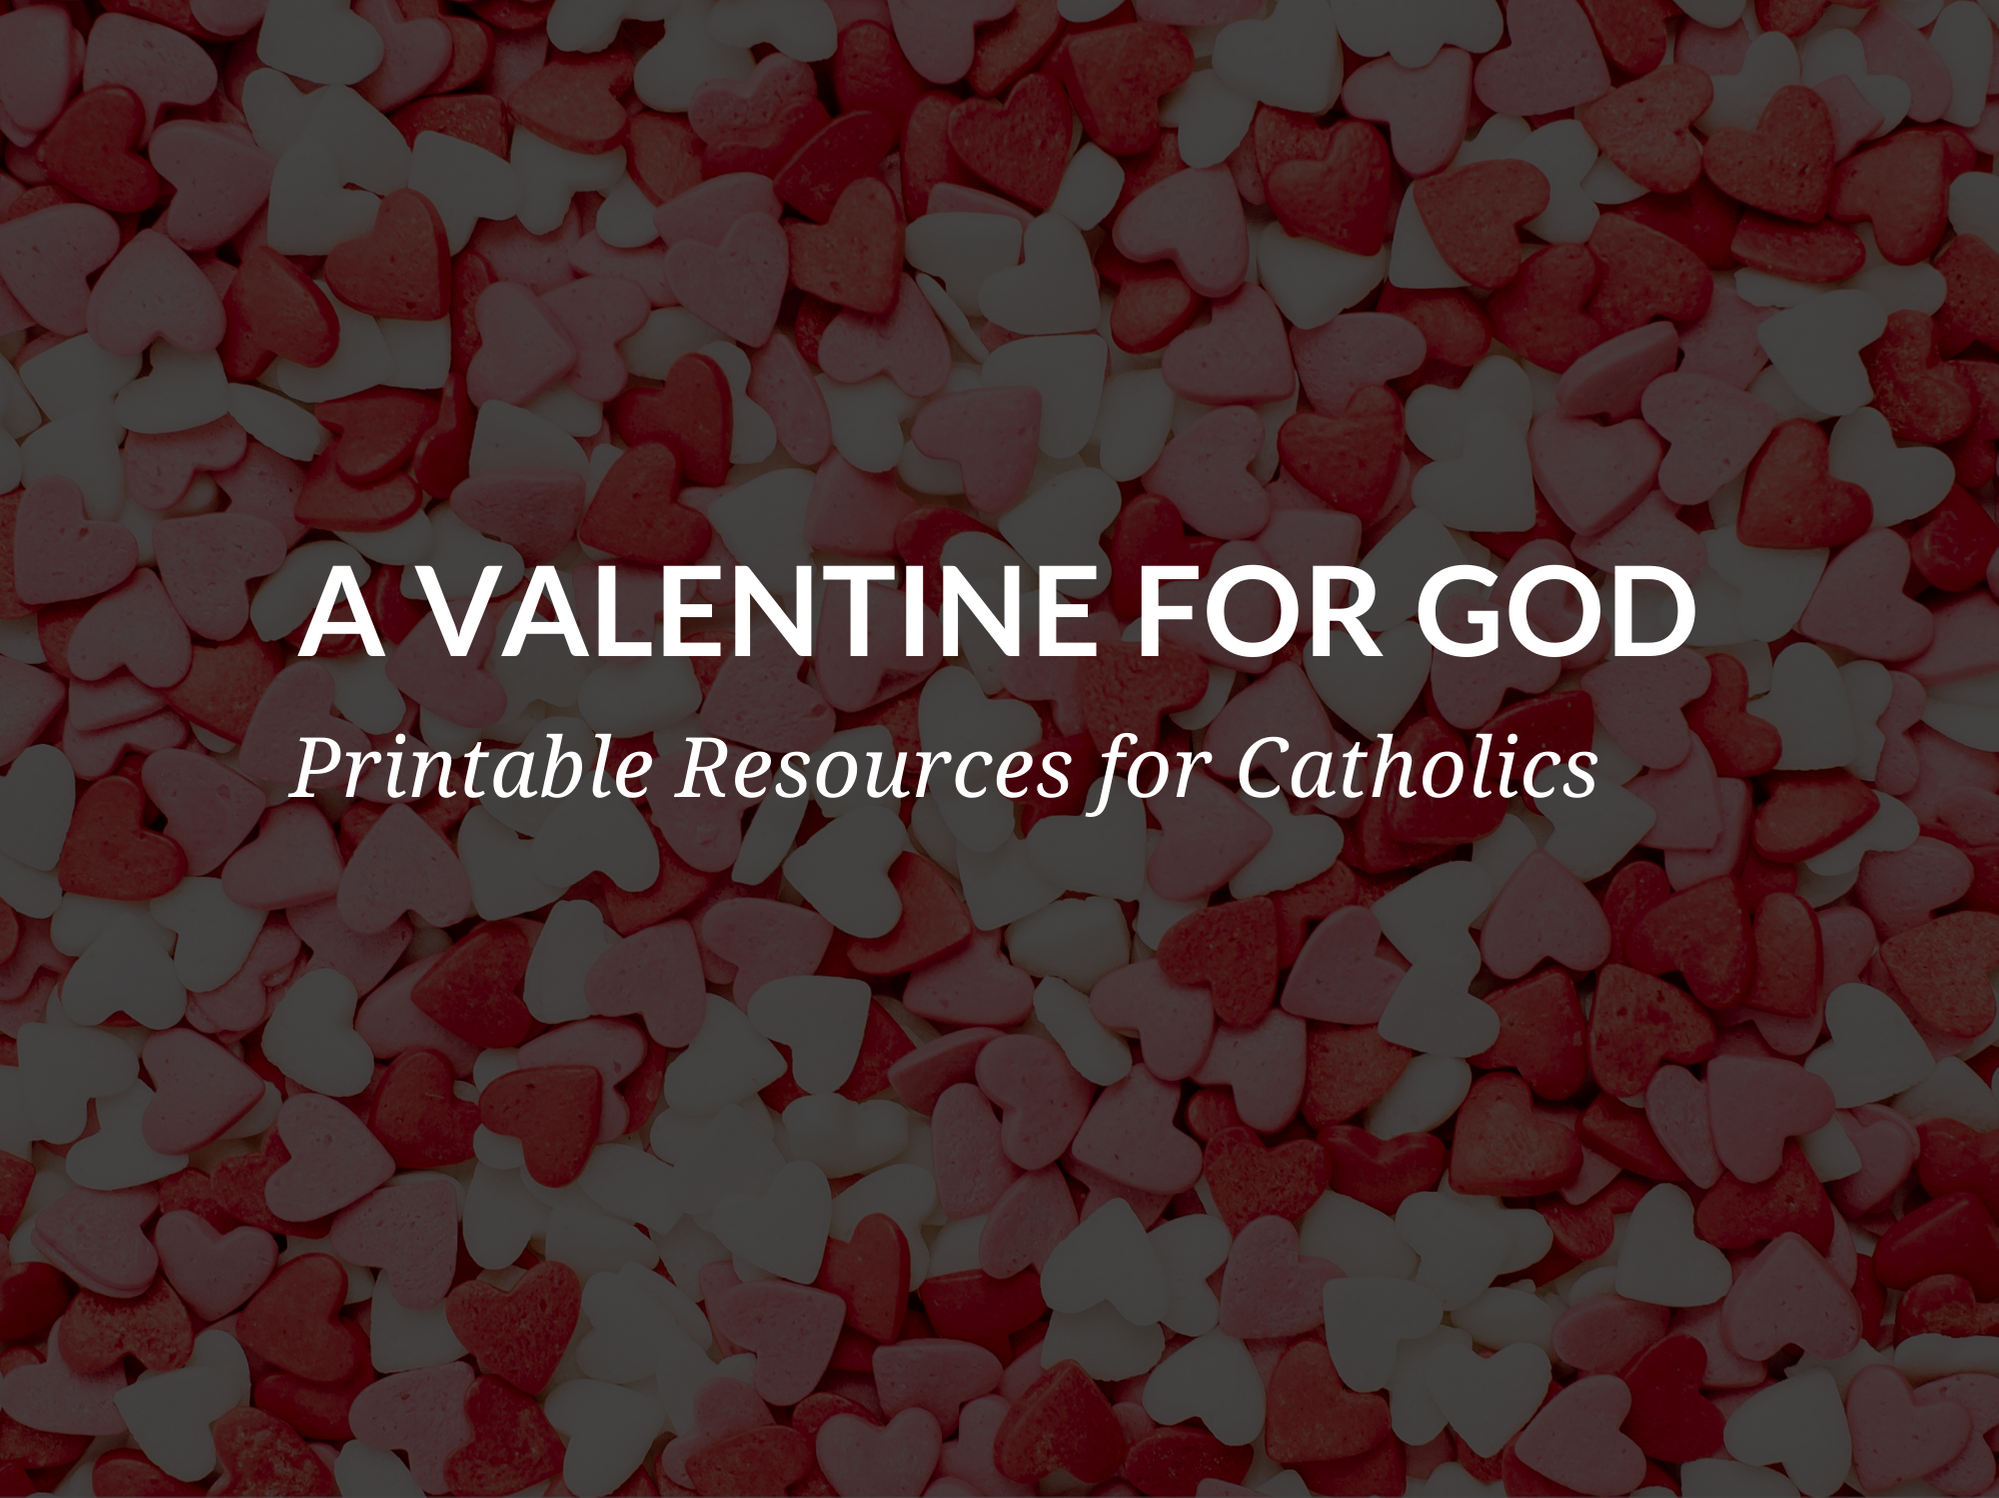 a-valentine-for-god-valentines-day-catholics-prayers